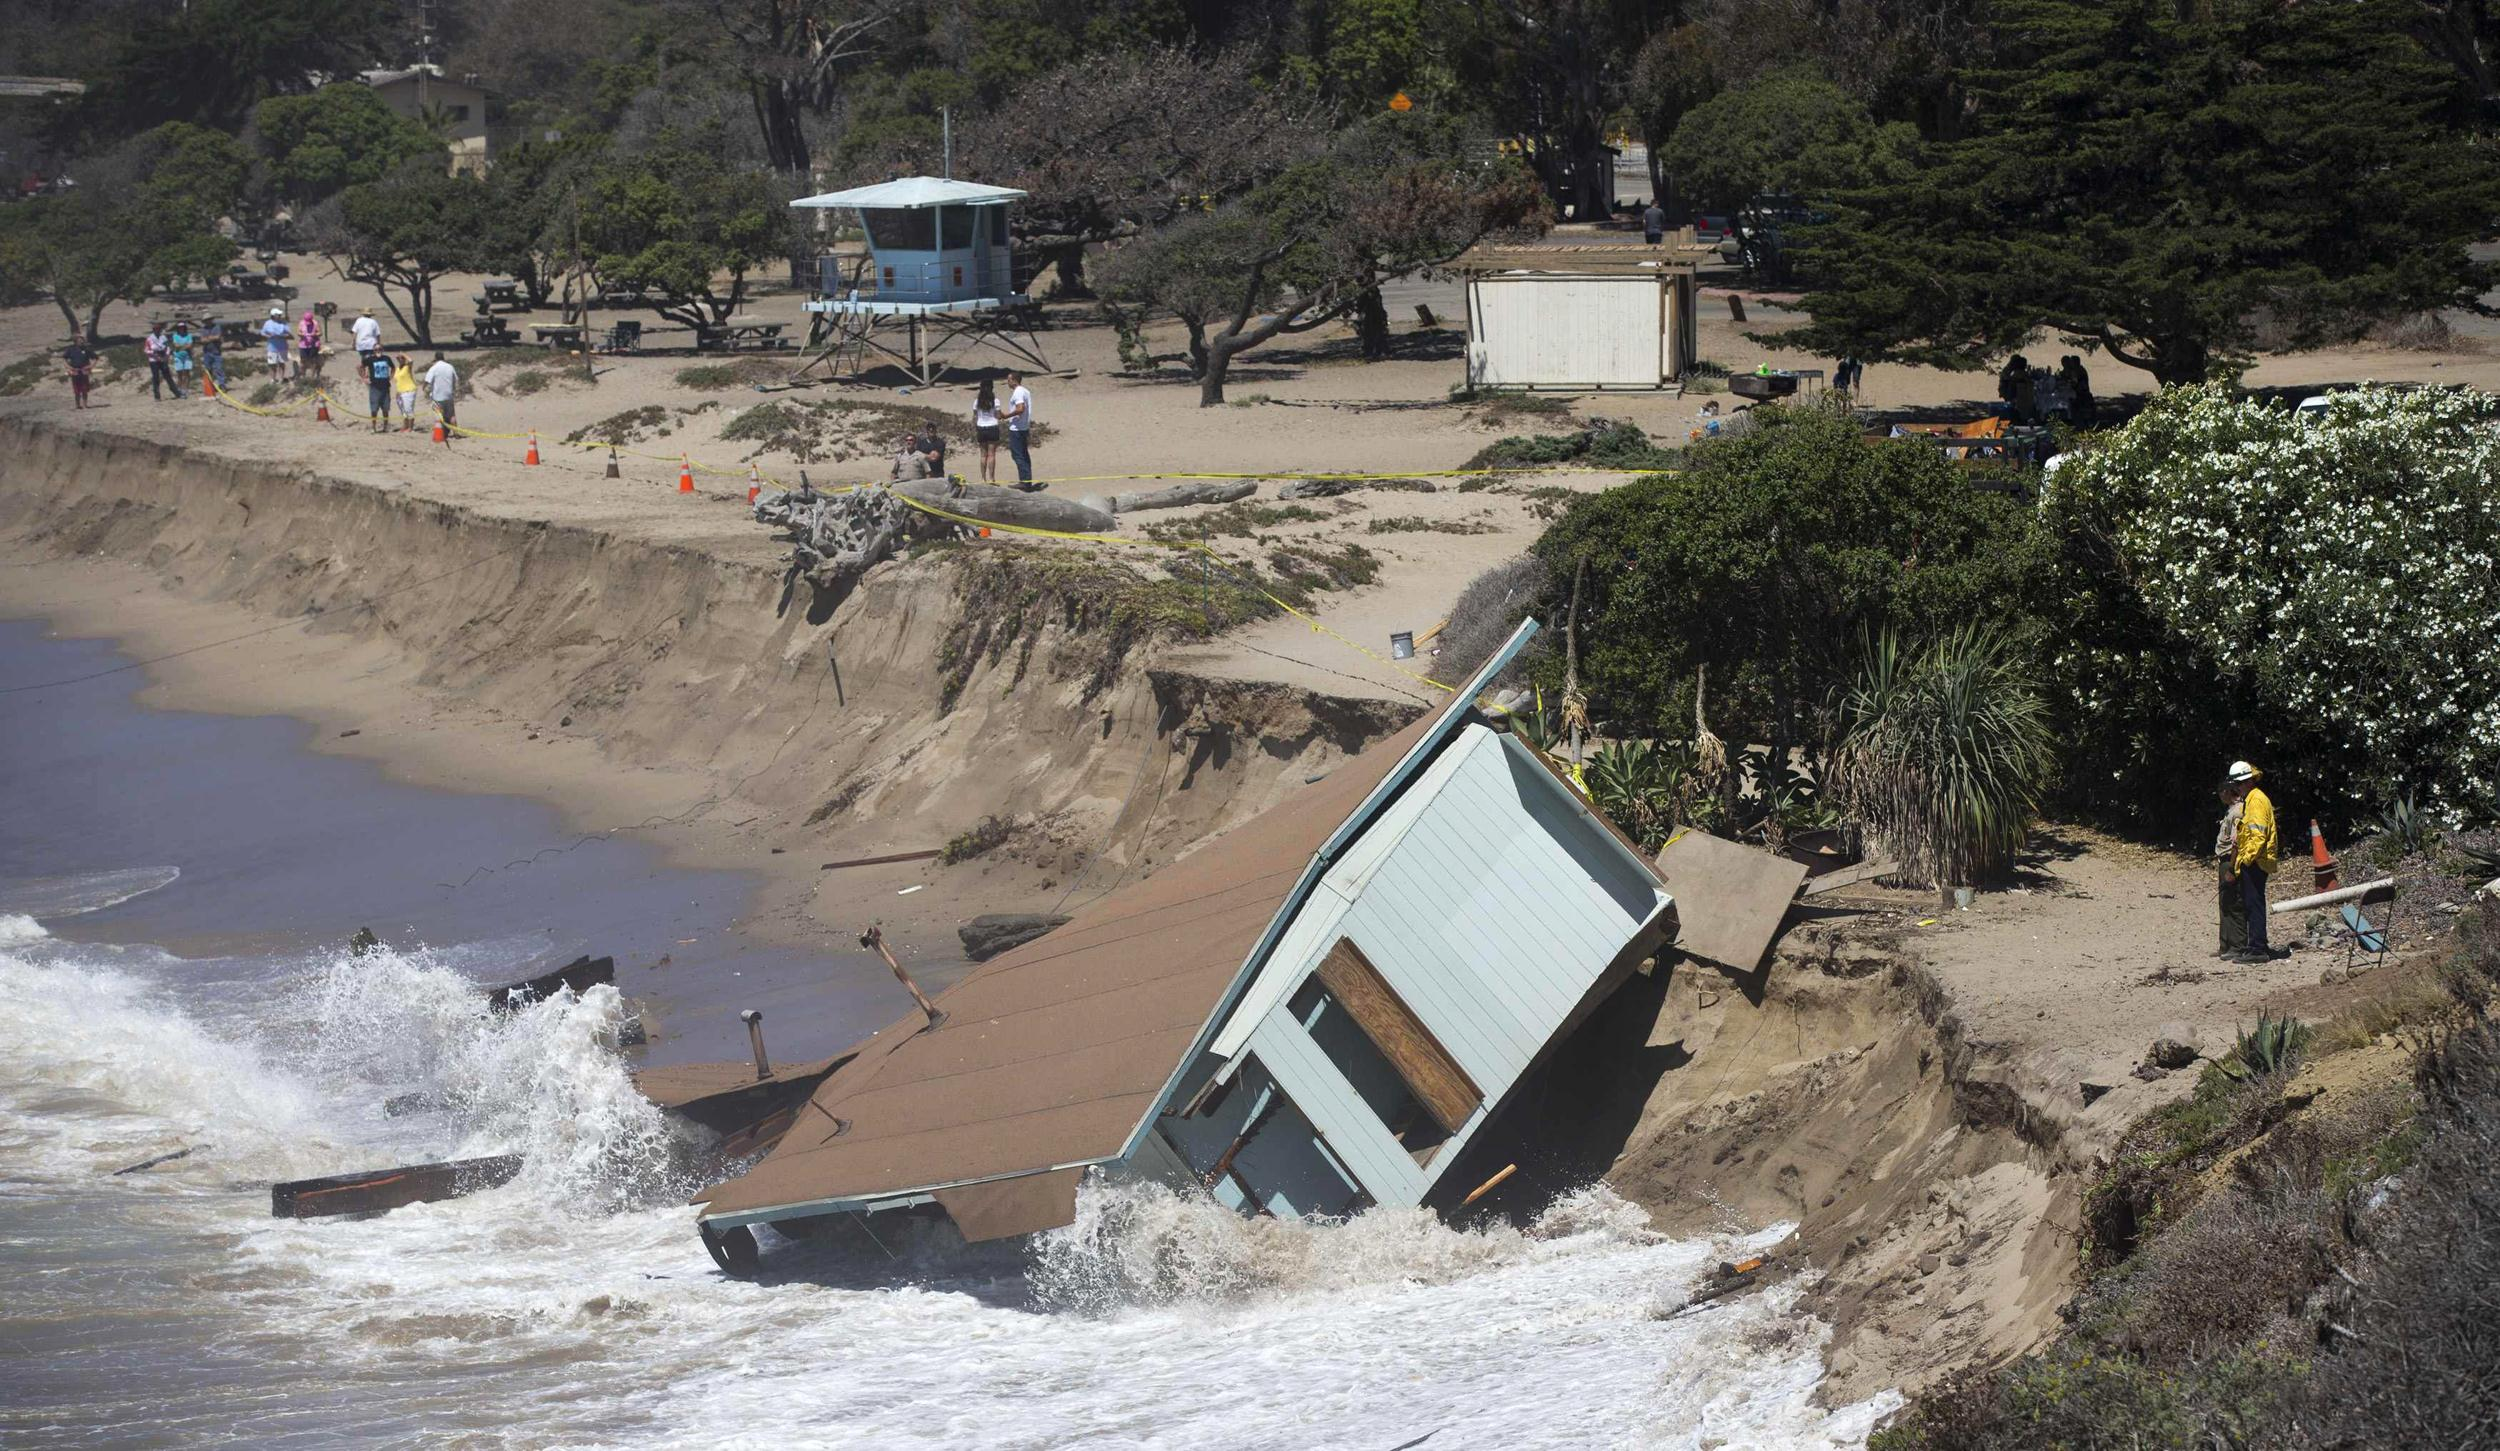 Image: The Cove House Lifeguard Administrative Building is pictured after it was destroyed by waves in Point Mugu